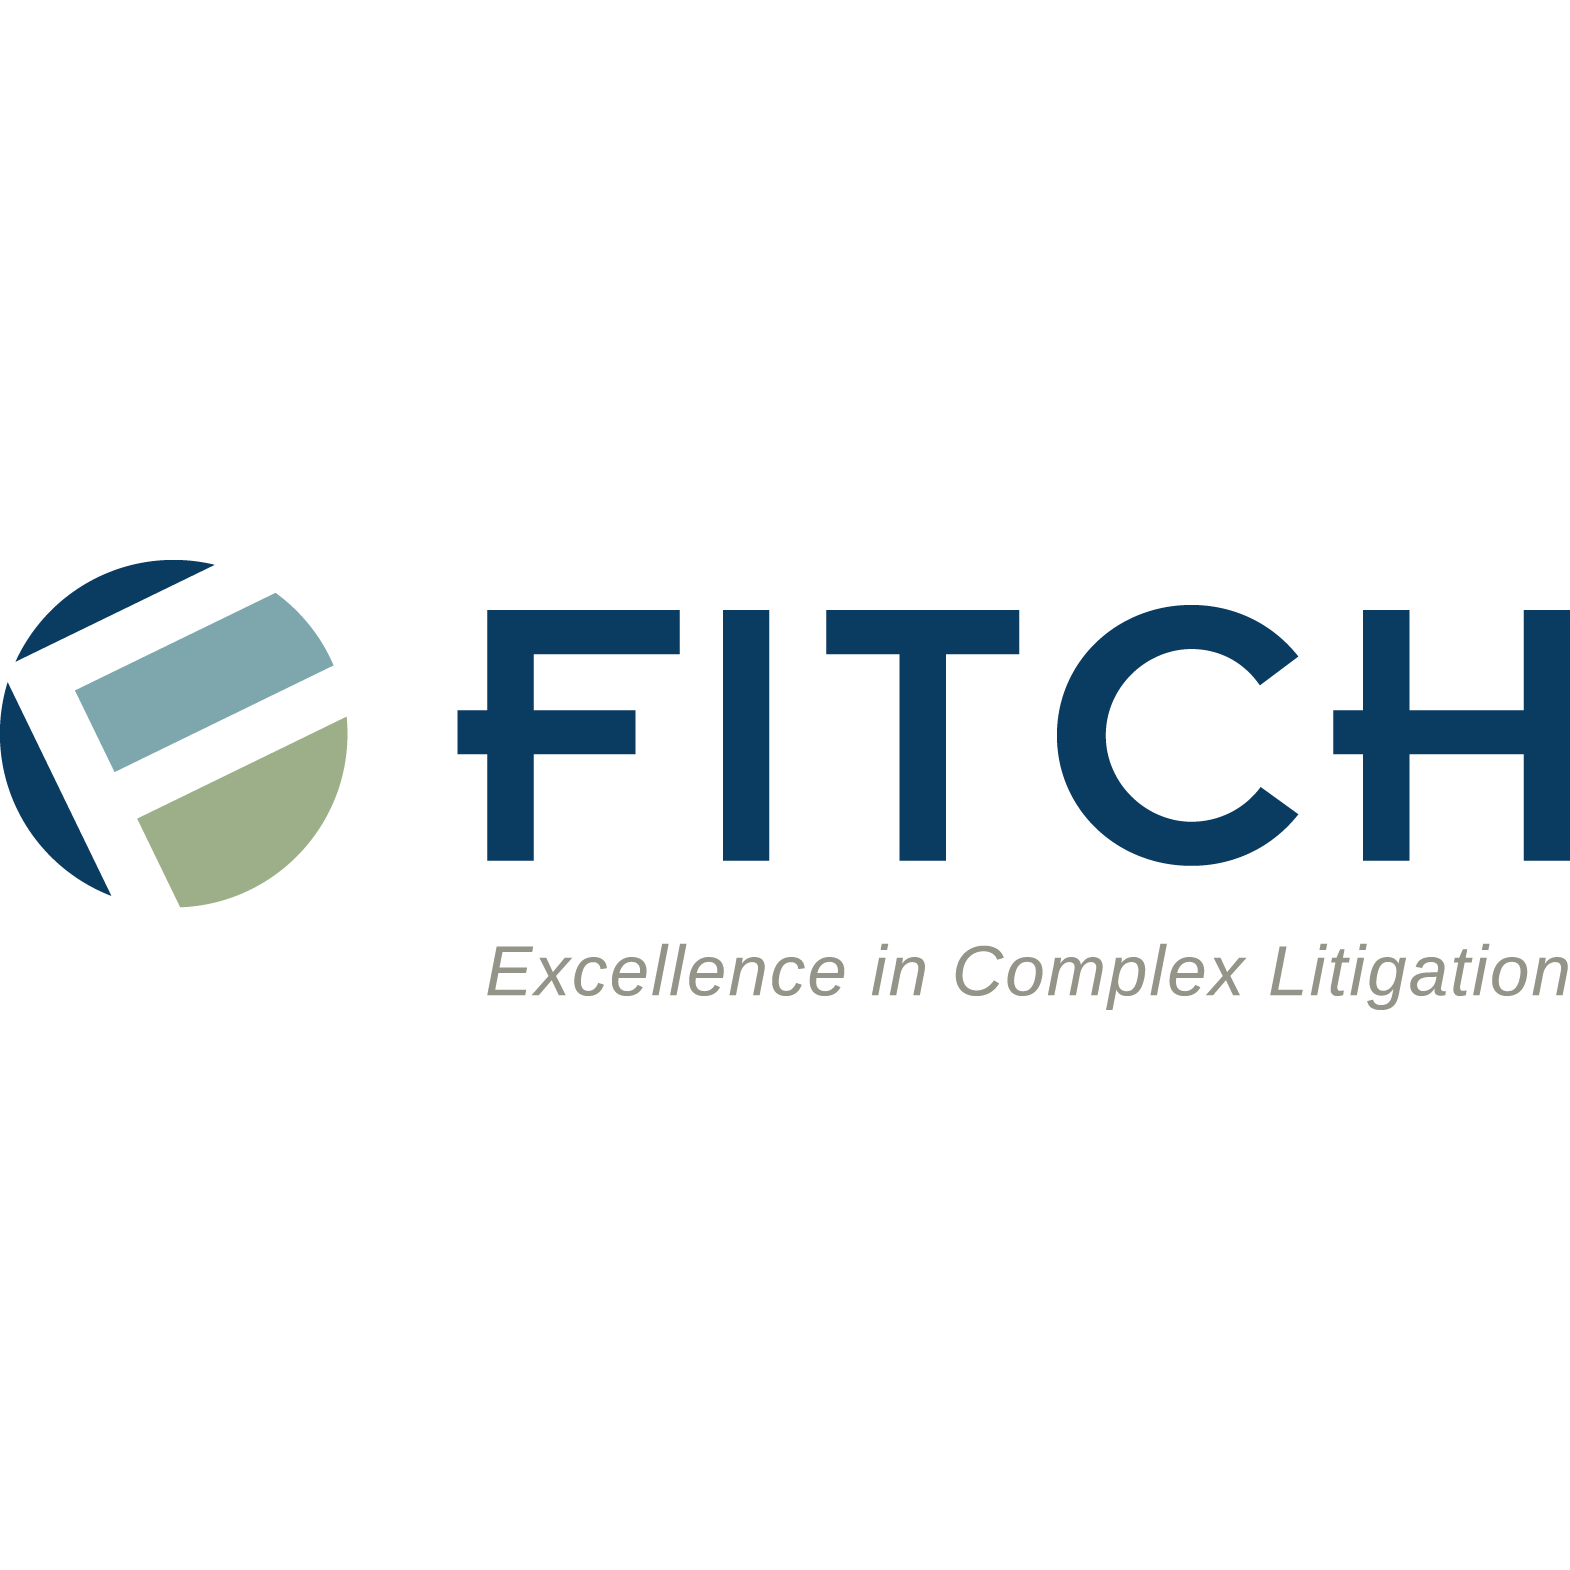 Fitch Law Partners LLP